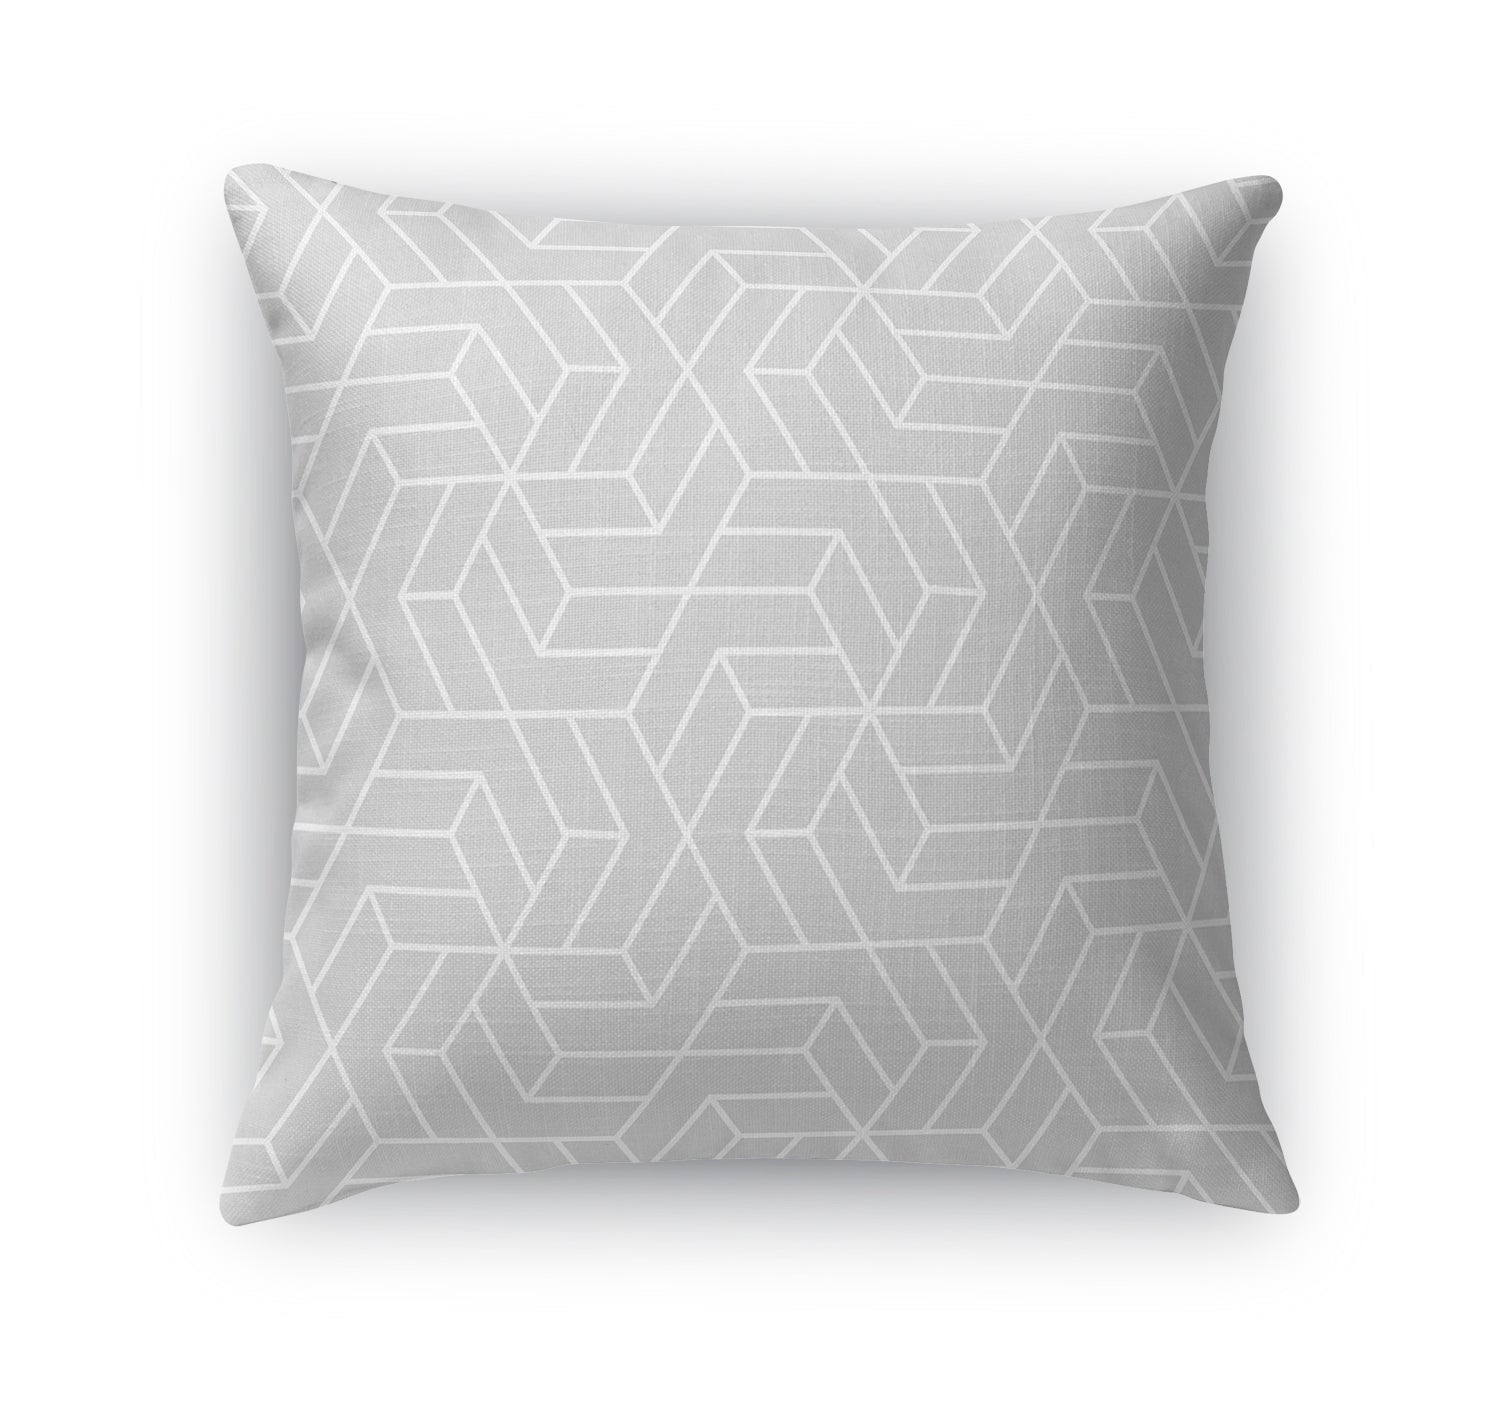 TITAN GREY Indoor|Outdoor Pillow By Terri Ellis